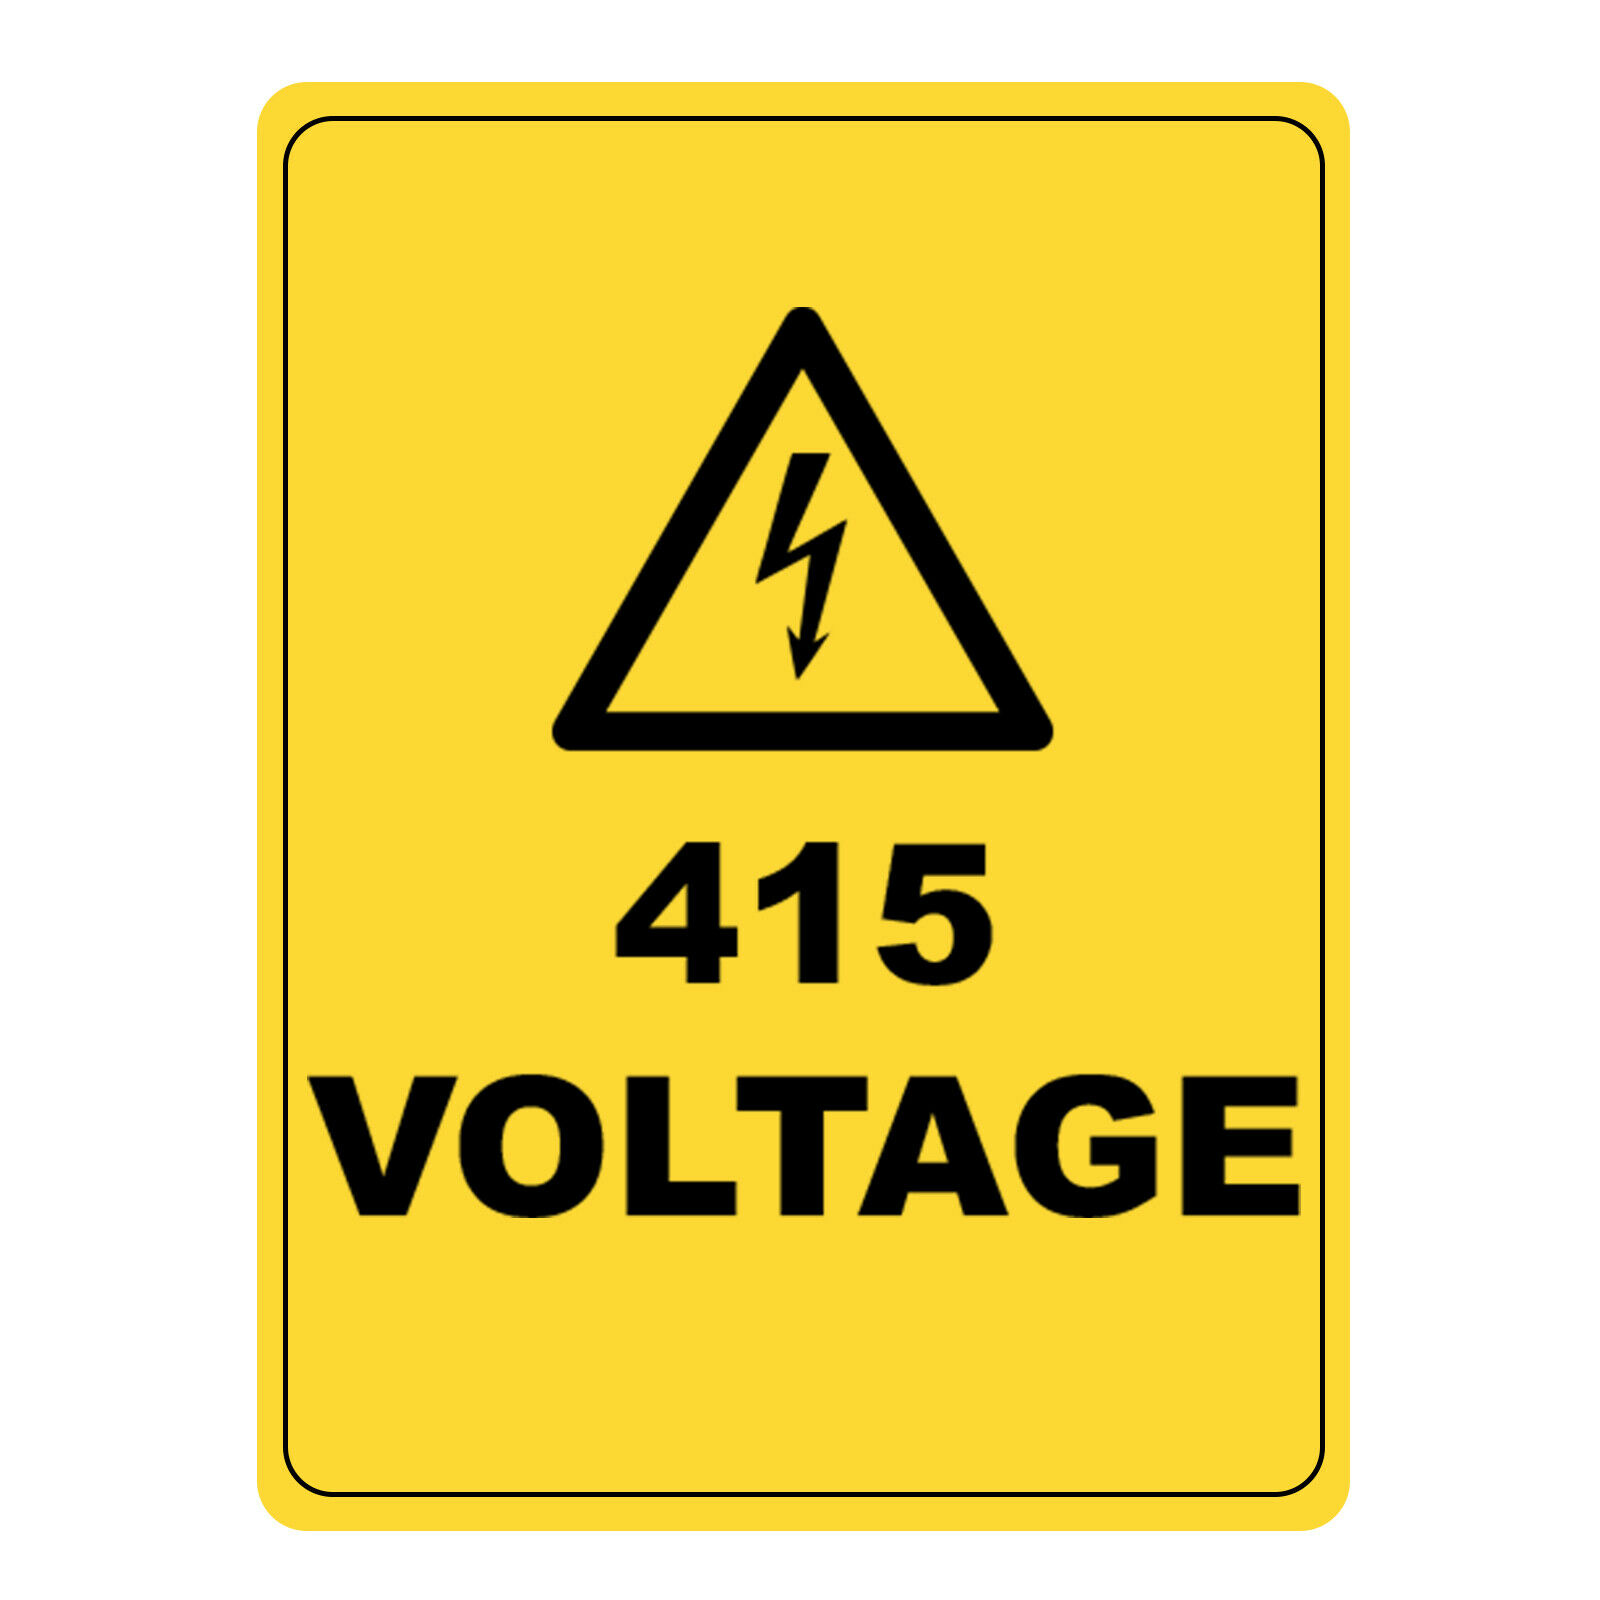 Caution Aluminium 415 Voltage Electrical Hazardous Health & Safety Warning Sign